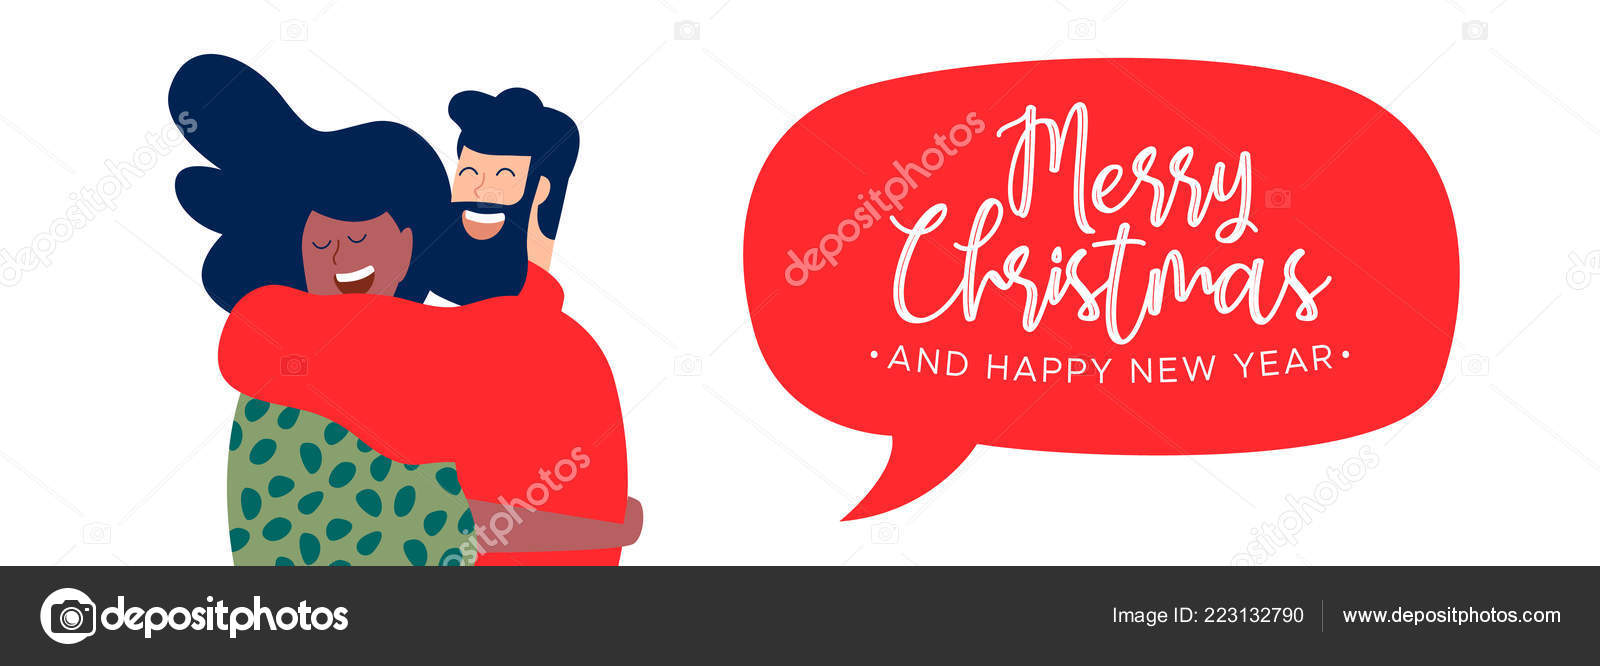 merry christmas happy new year web banner illustration two friends stock vector